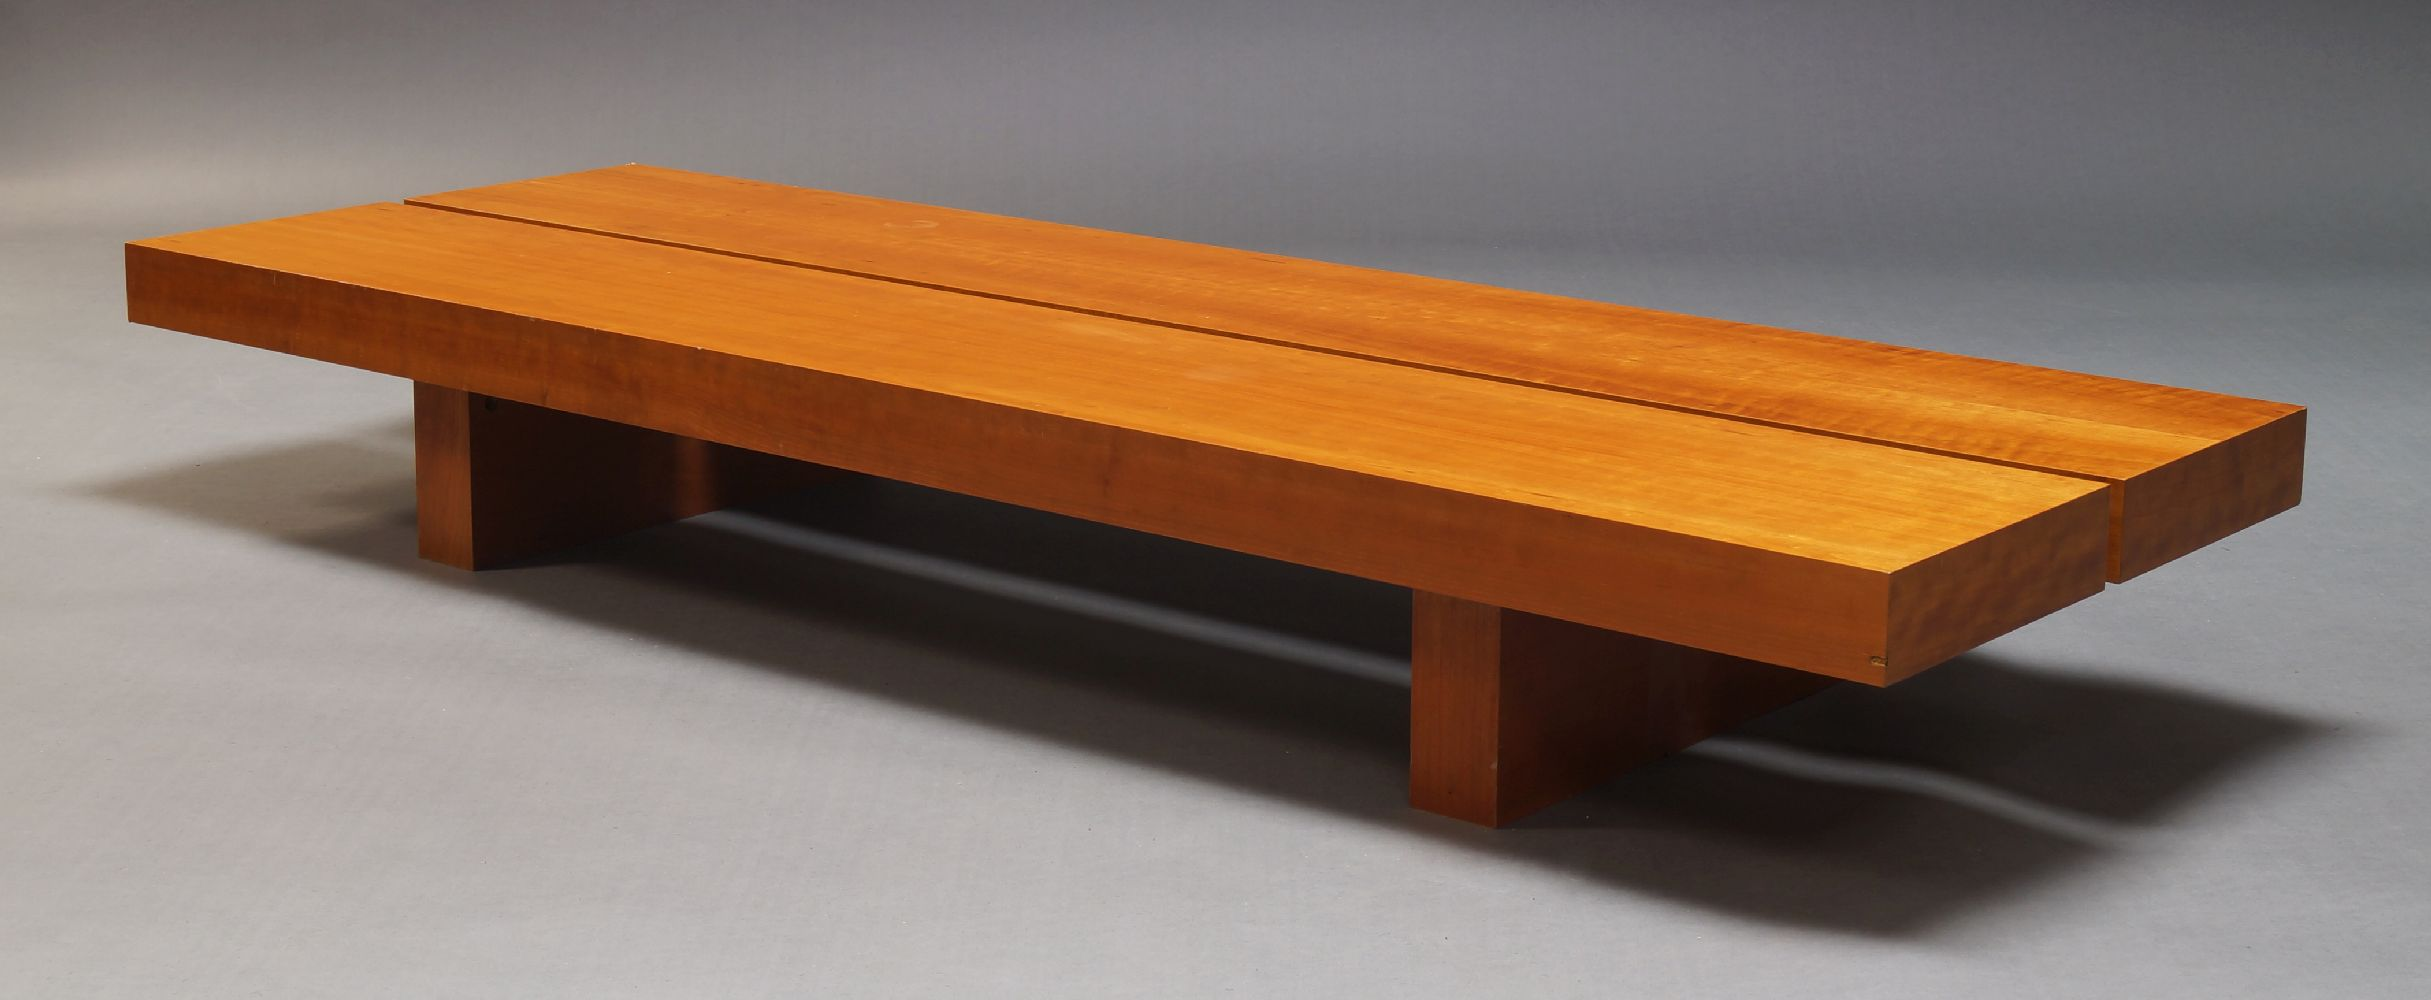 A contemporary cherry wood veneered low coffee table, of recent manufacture, with rectangular two